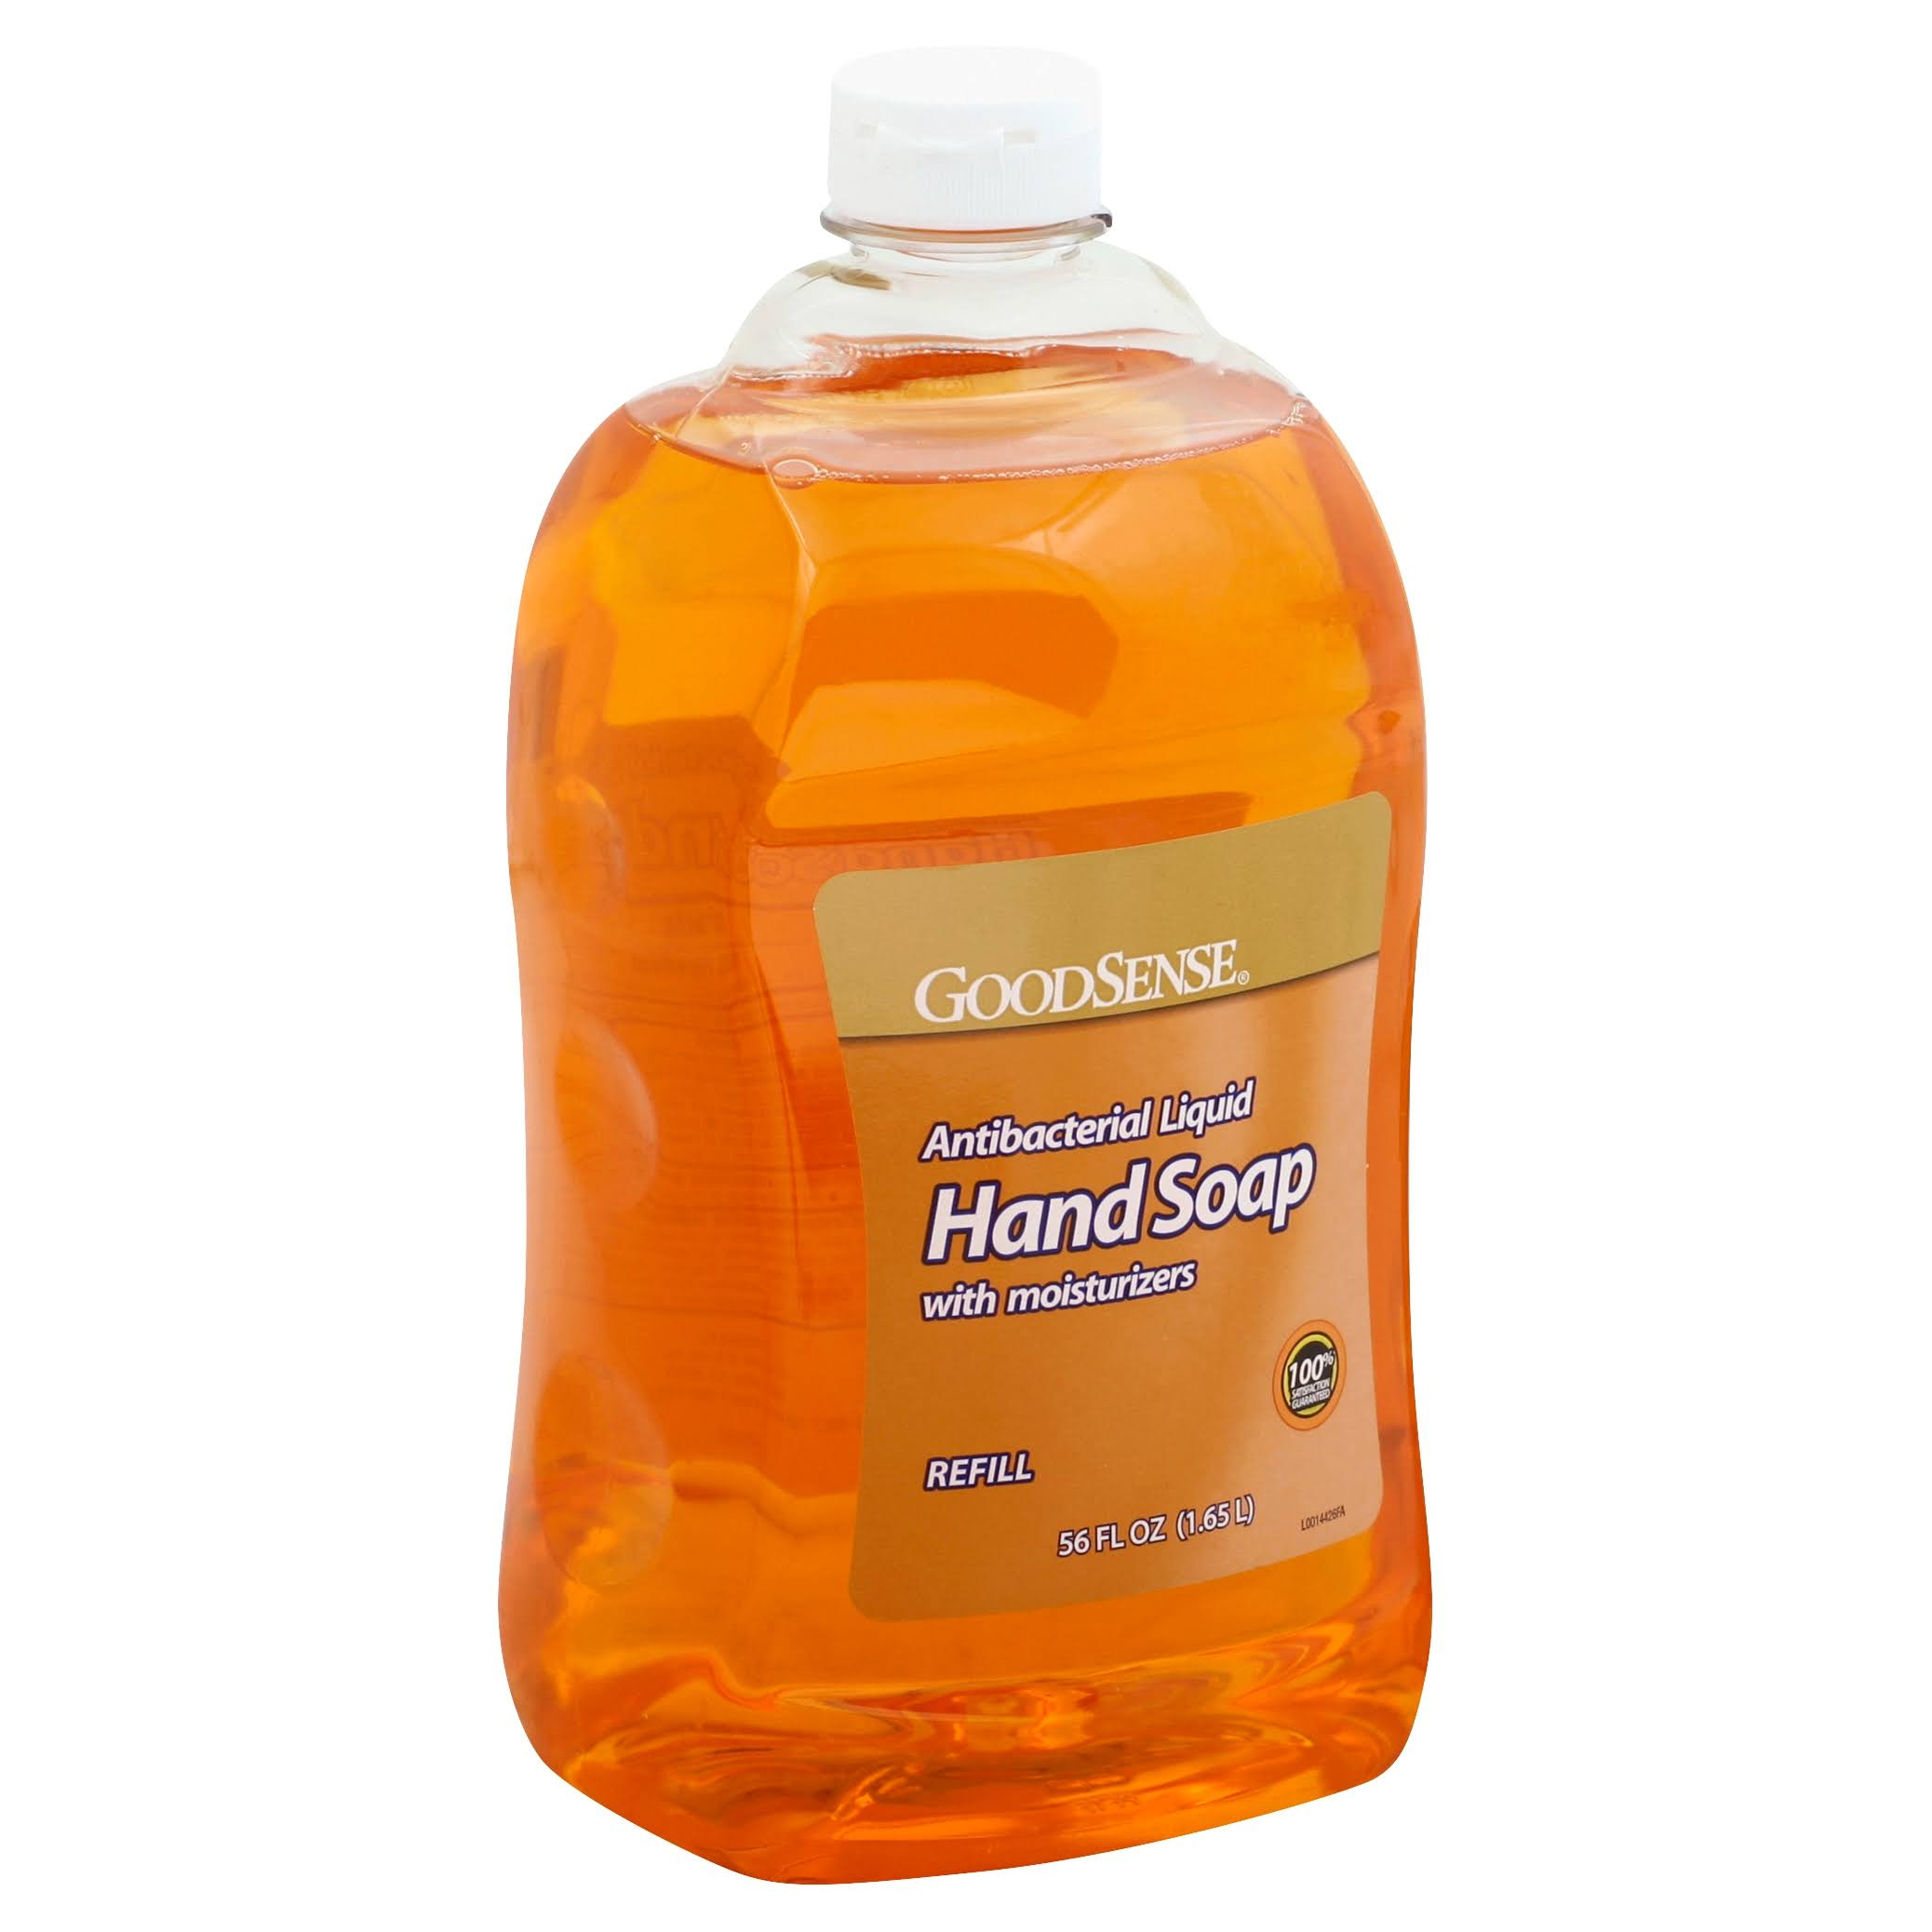 GoodSense Hand Soap, with Moisturizers, Antibacterial, Liquid, Refill - 56 fl oz